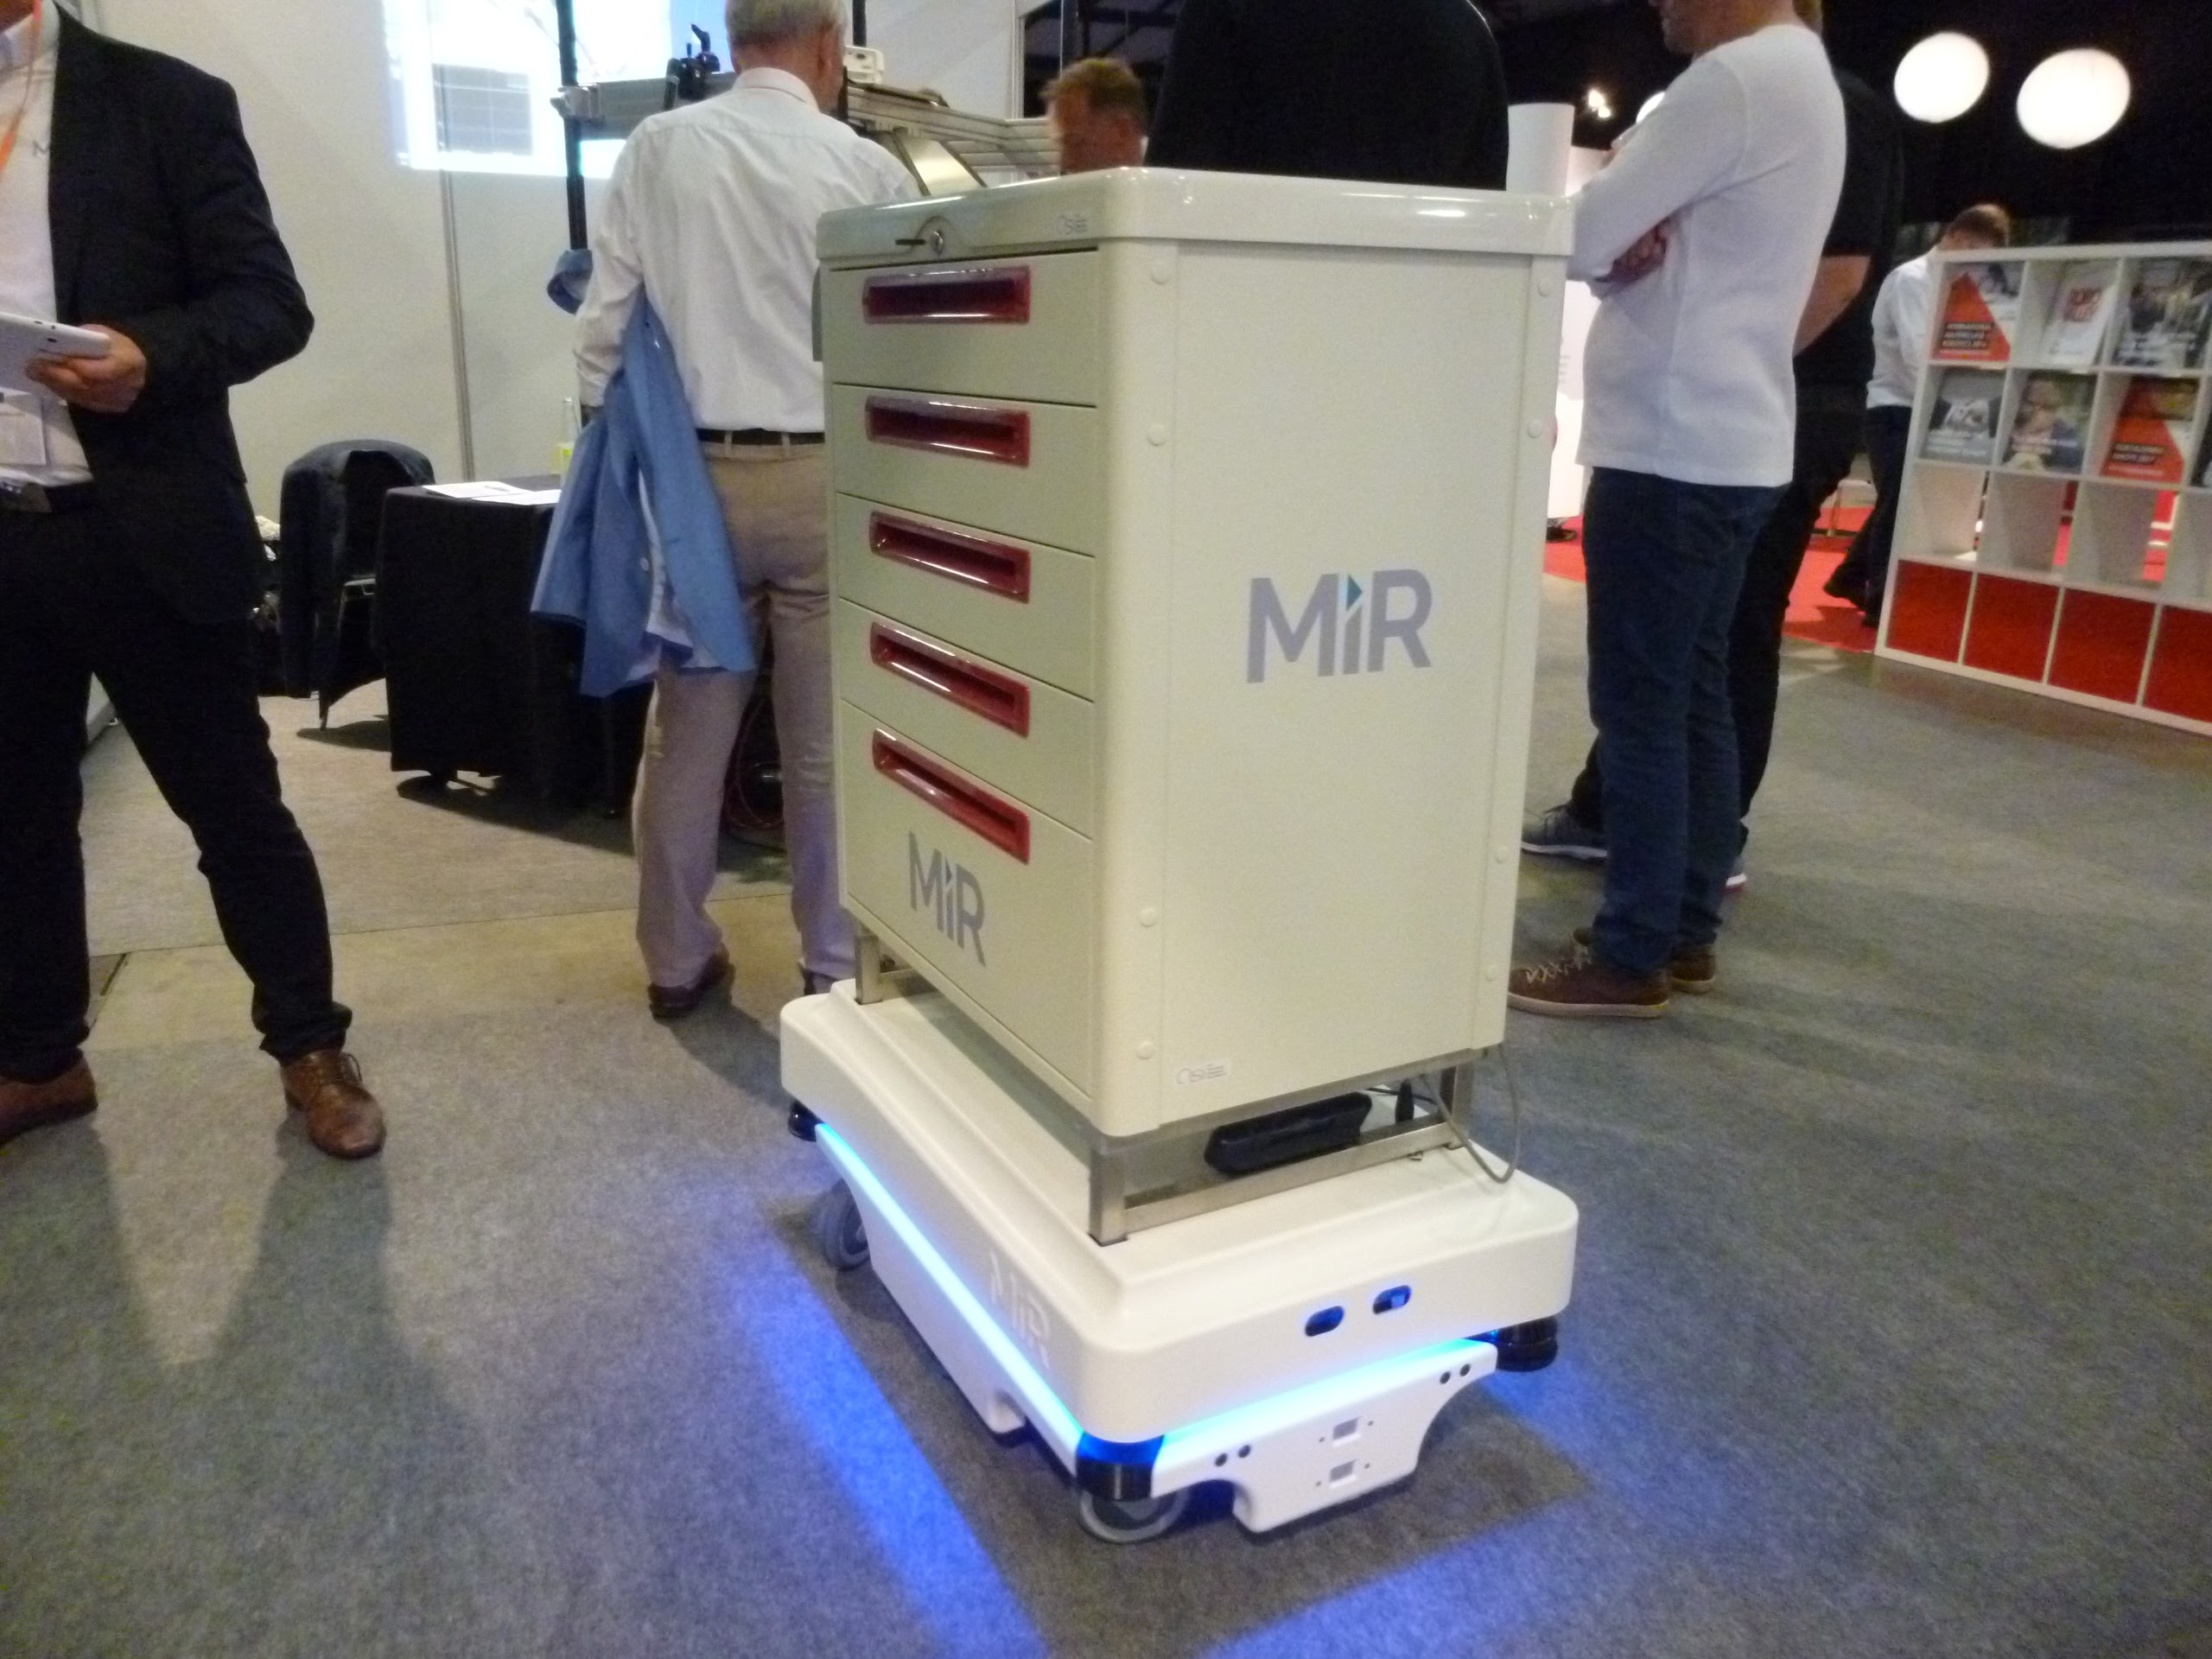 MIR社の自律搬送ロボット